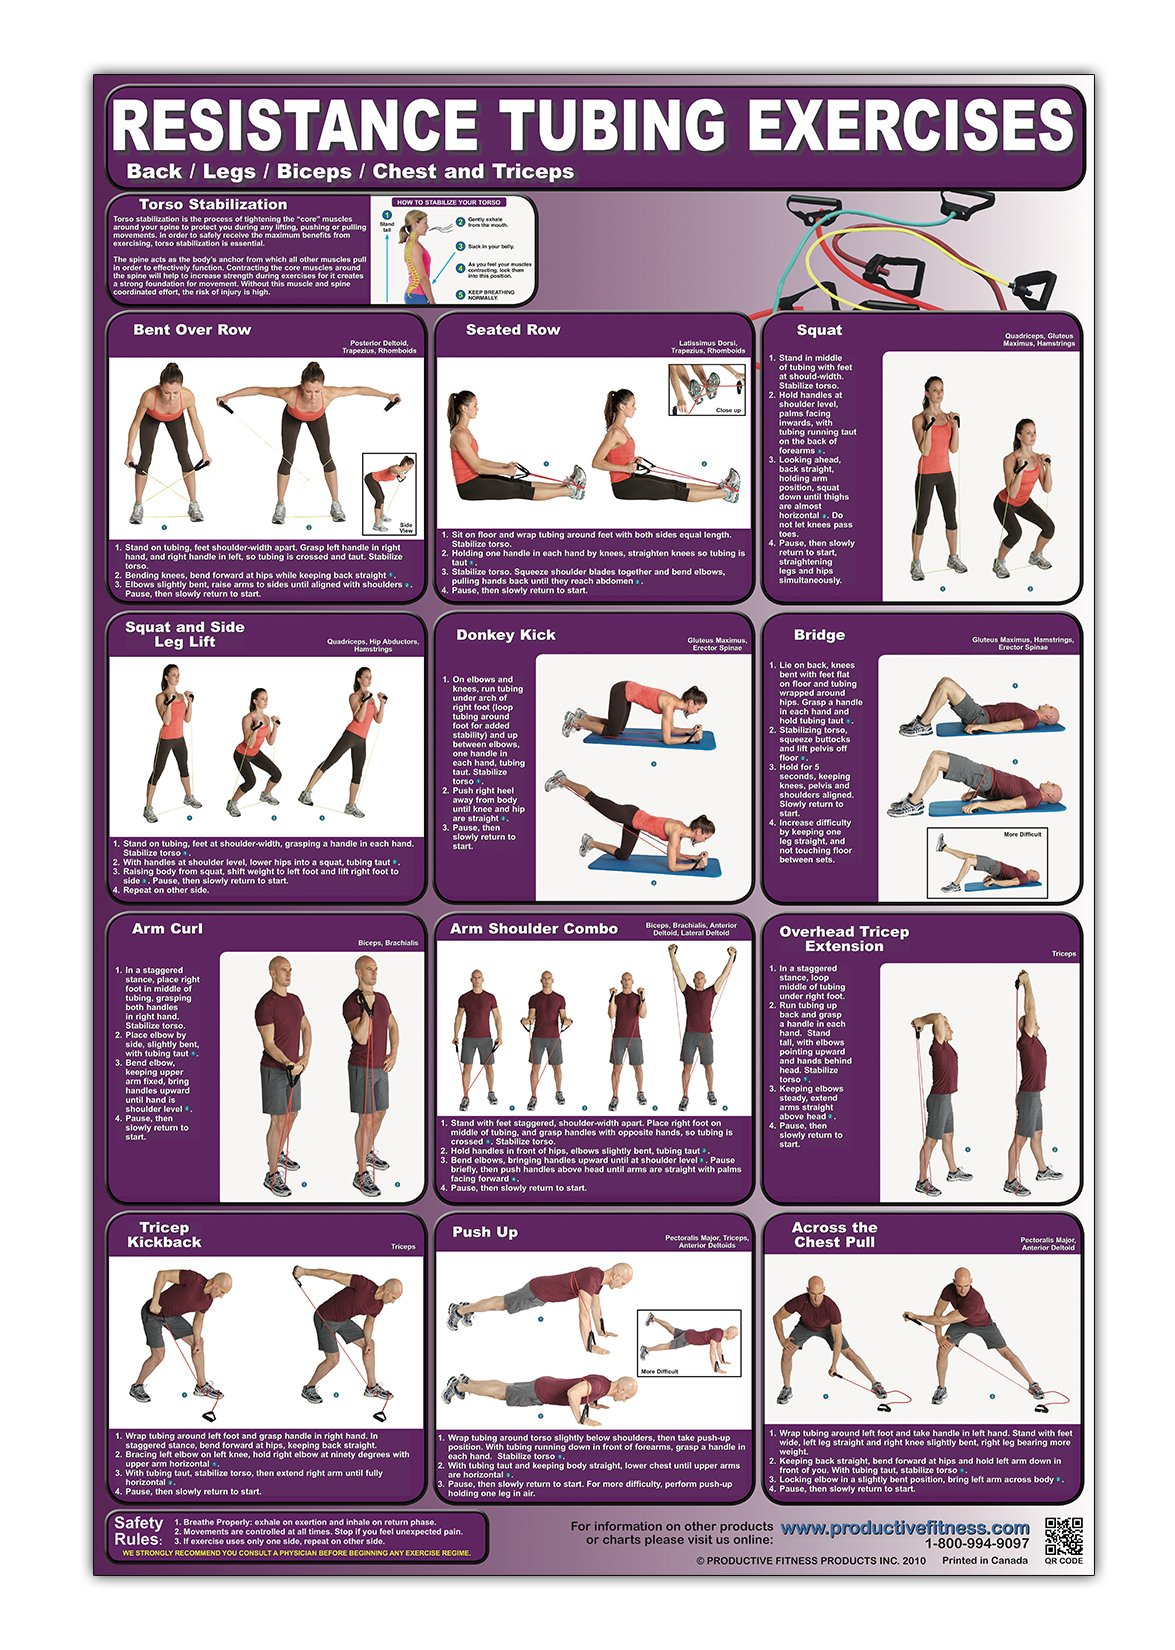 Resistance Tubing Exercises Poster Chart Back Legs Biceps Chest